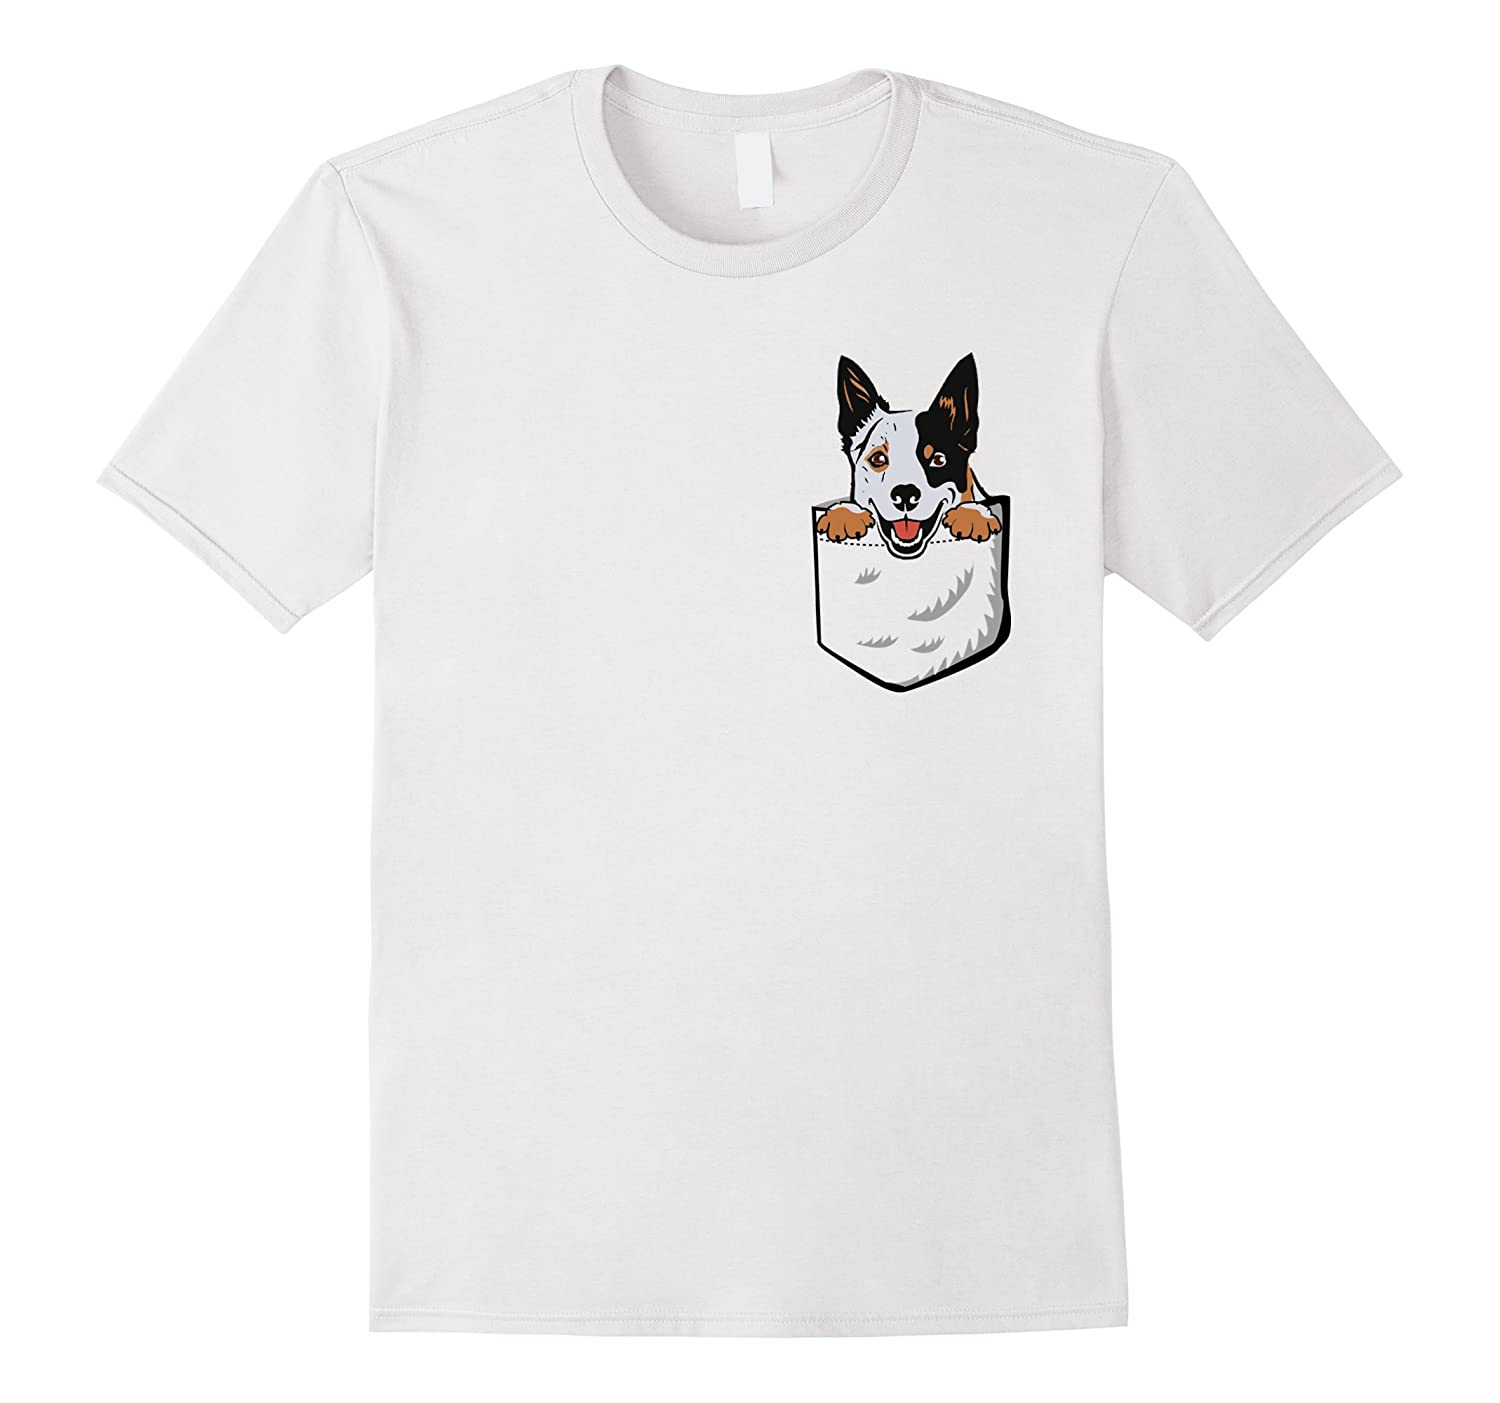 efa51221fbf Adorable Little Australian Cattle Dog In The Pocket T shirt-Colonhue